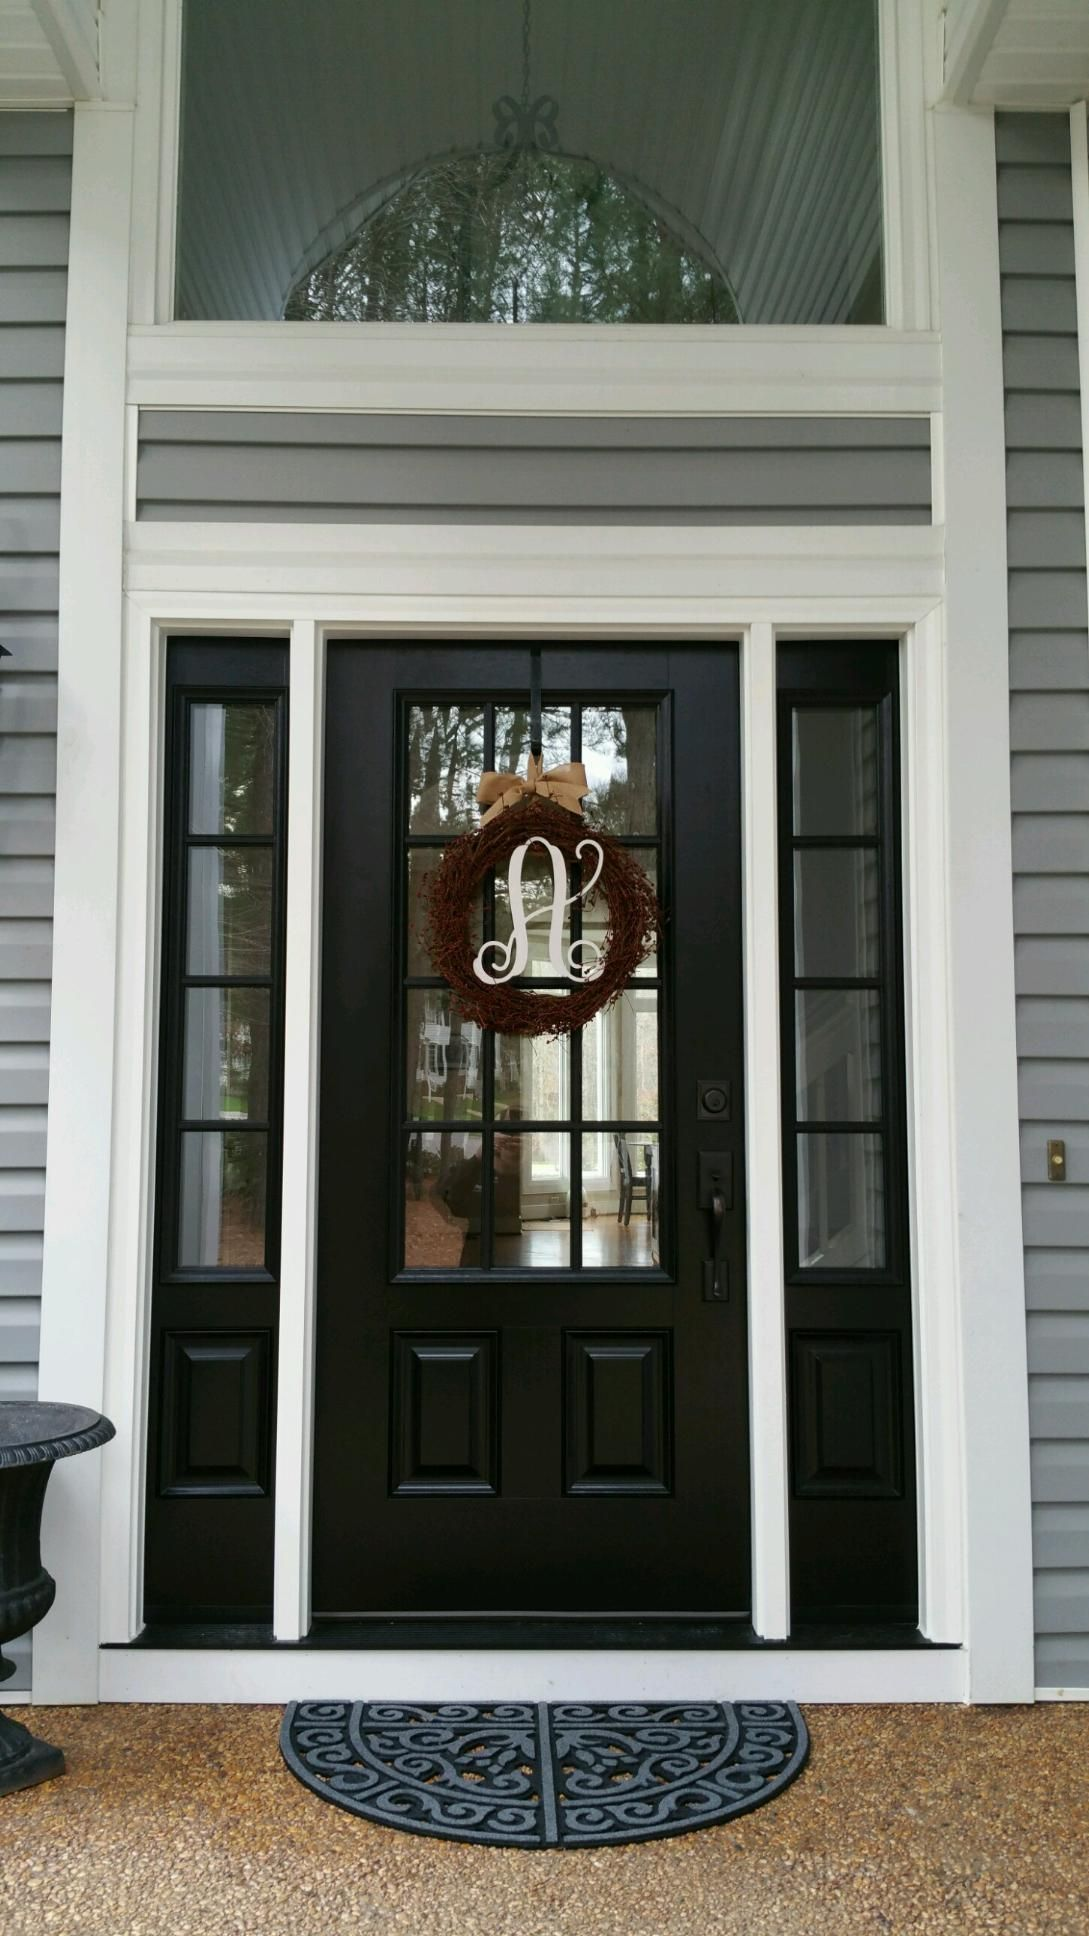 Model 440 Signet Fiberglass Front Entry Door Coal Black